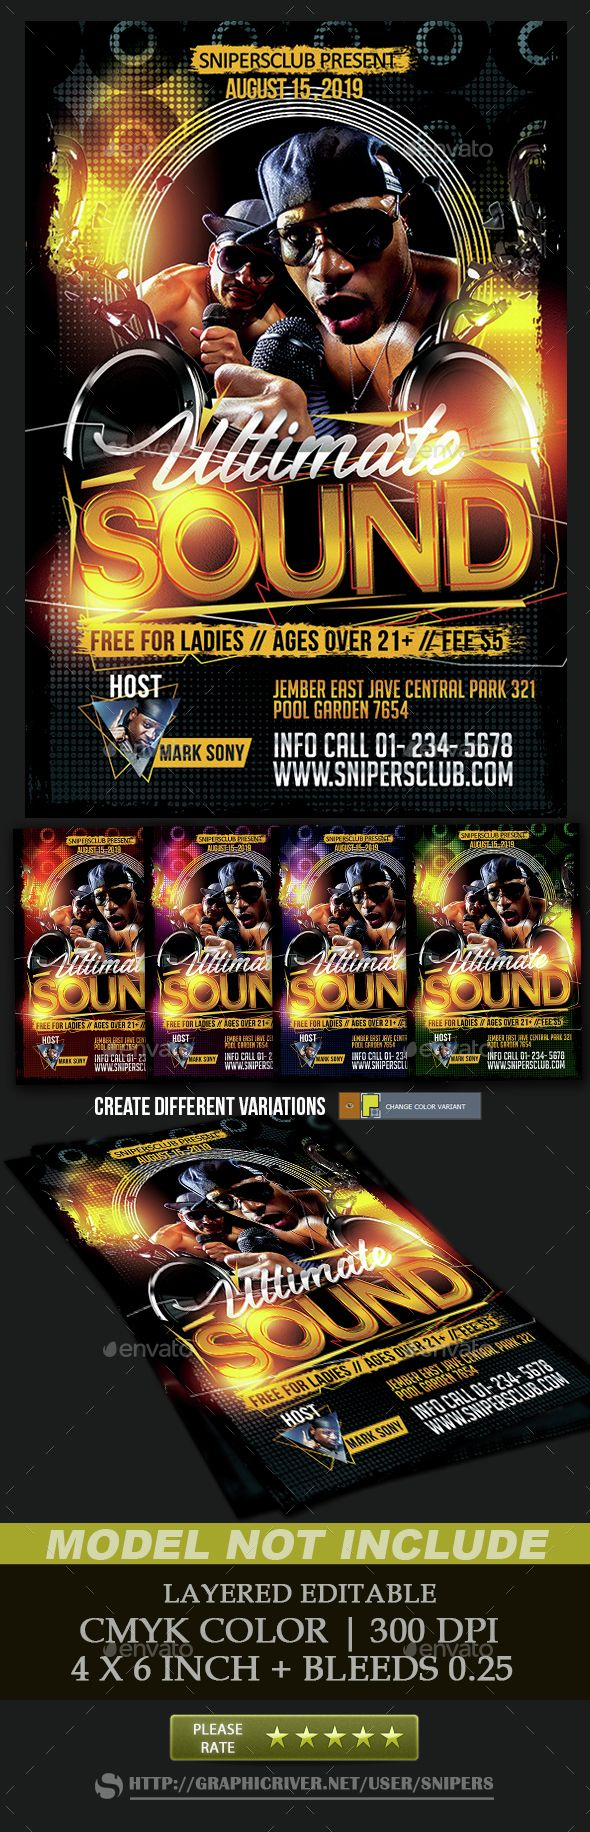 Ultimate Sound Flyer Template PSD. Download here: http://graphicriver.net/item/ultimate-sound/15112578?ref=ksioks